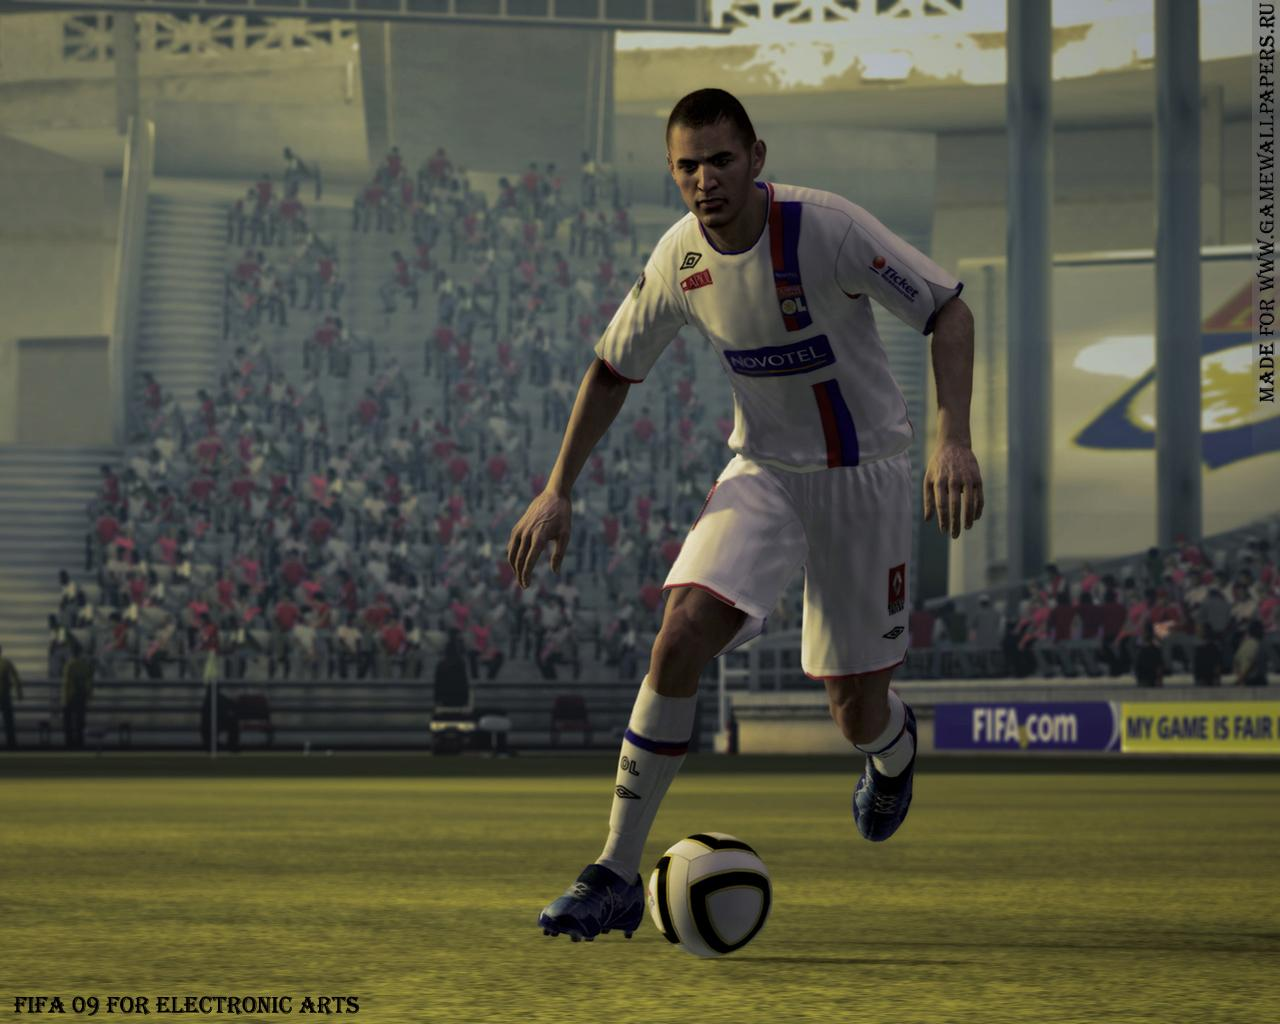 Fifa 09 Wallpapers - Games Wallpapers #2